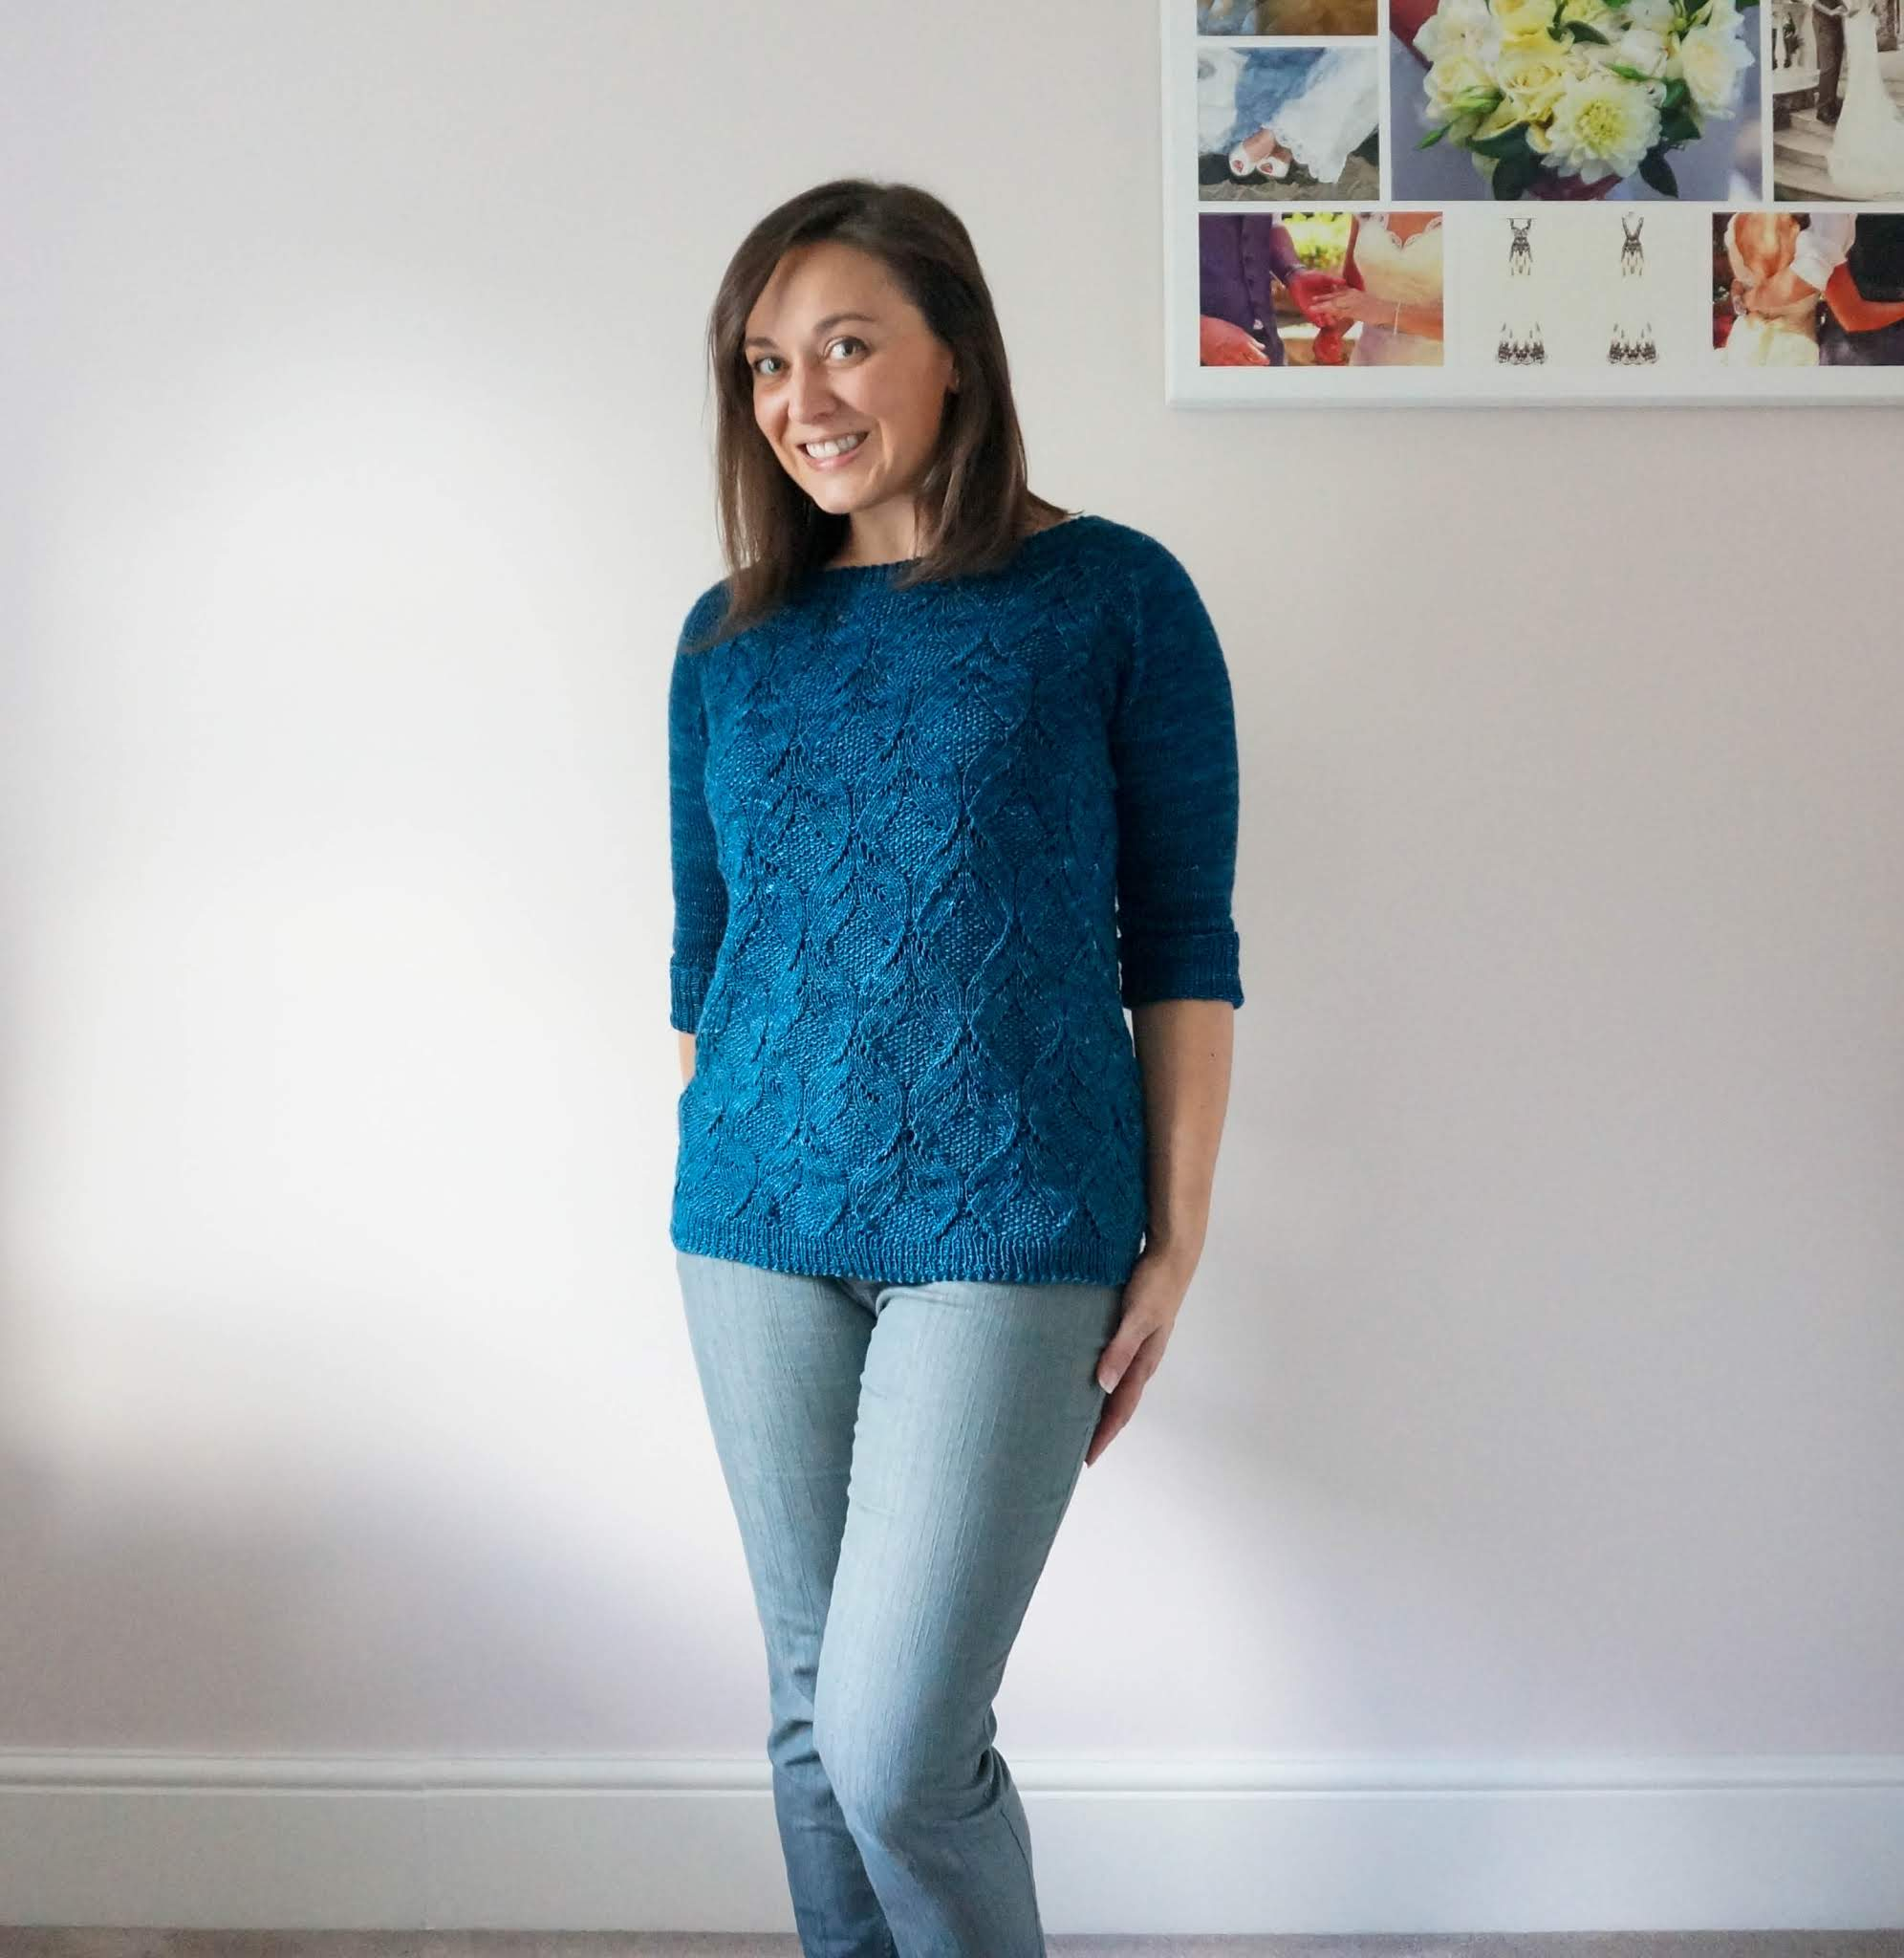 Poet sweater knitting pattern review